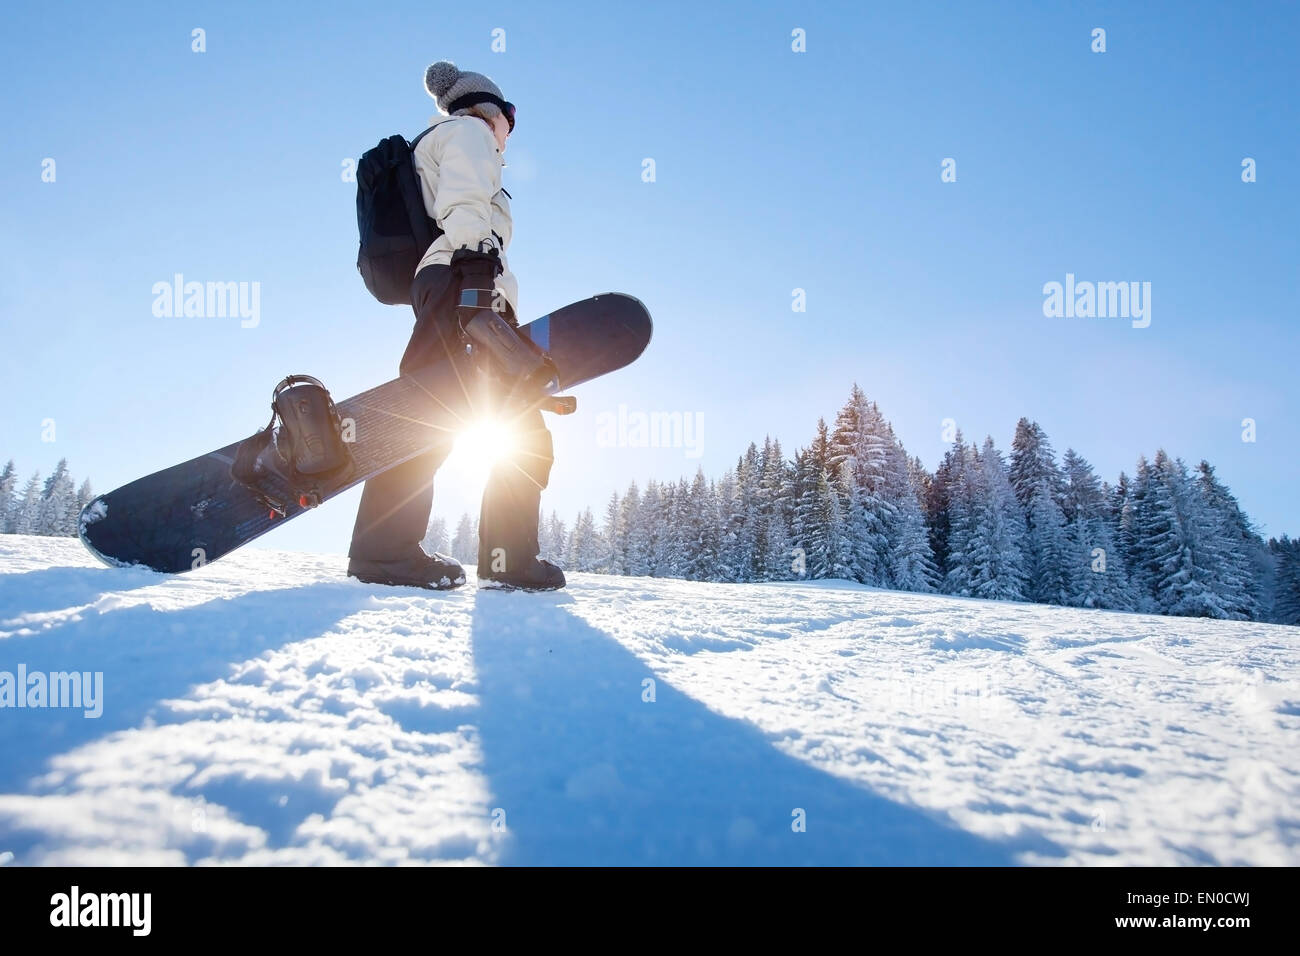 Snowboarding in winter - Stock Image